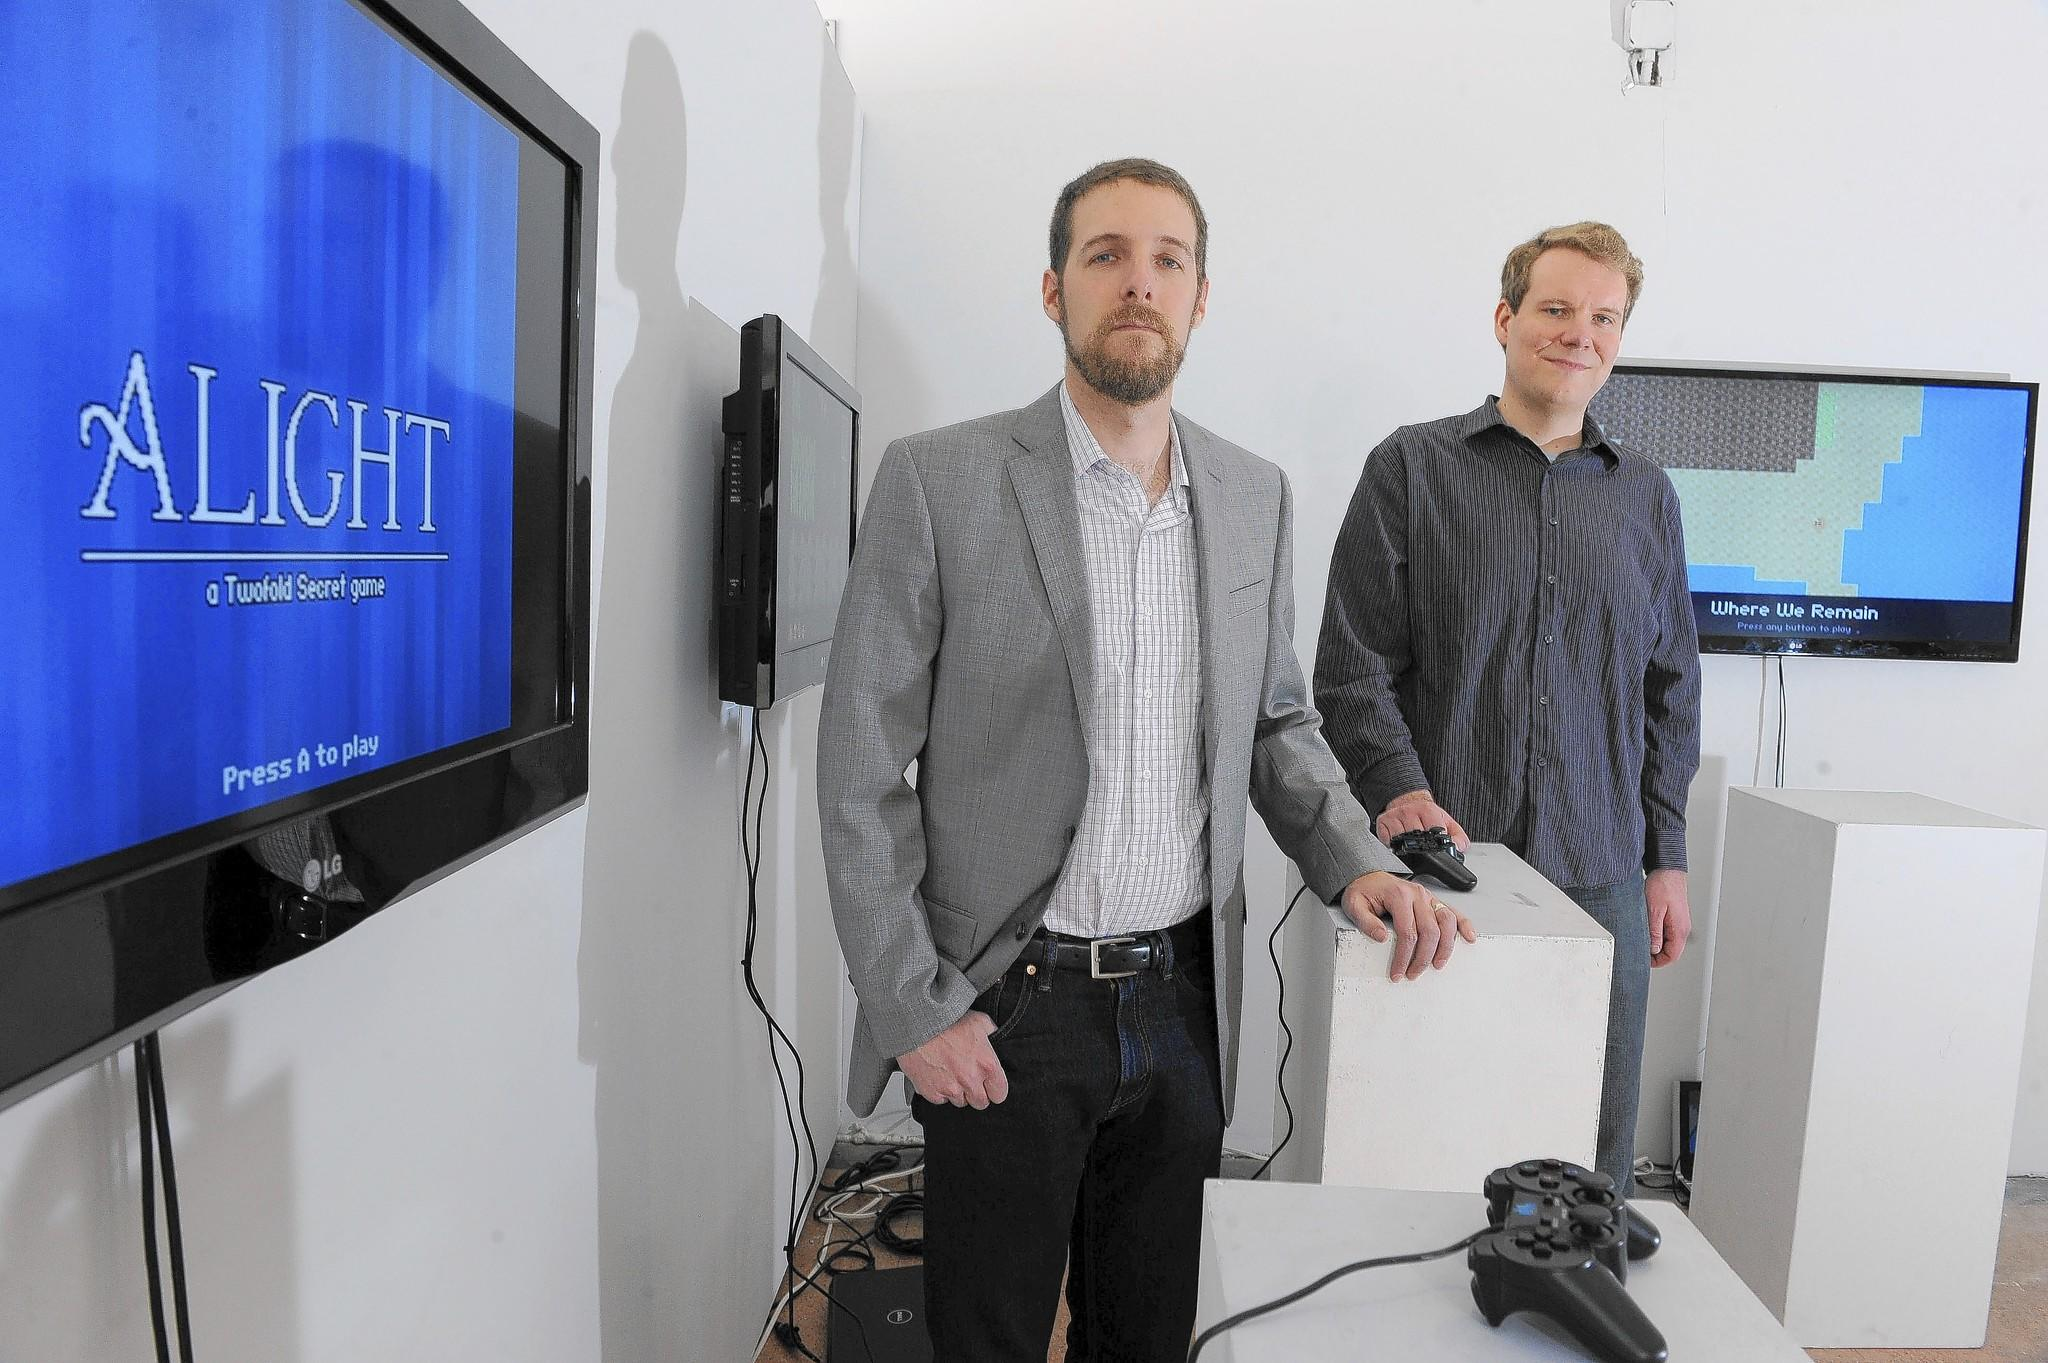 Joel Haddock, left, and Chris Klimas, partners in the independent video game company Twofold Secret, pose at an exhibition of their games at Current Space.